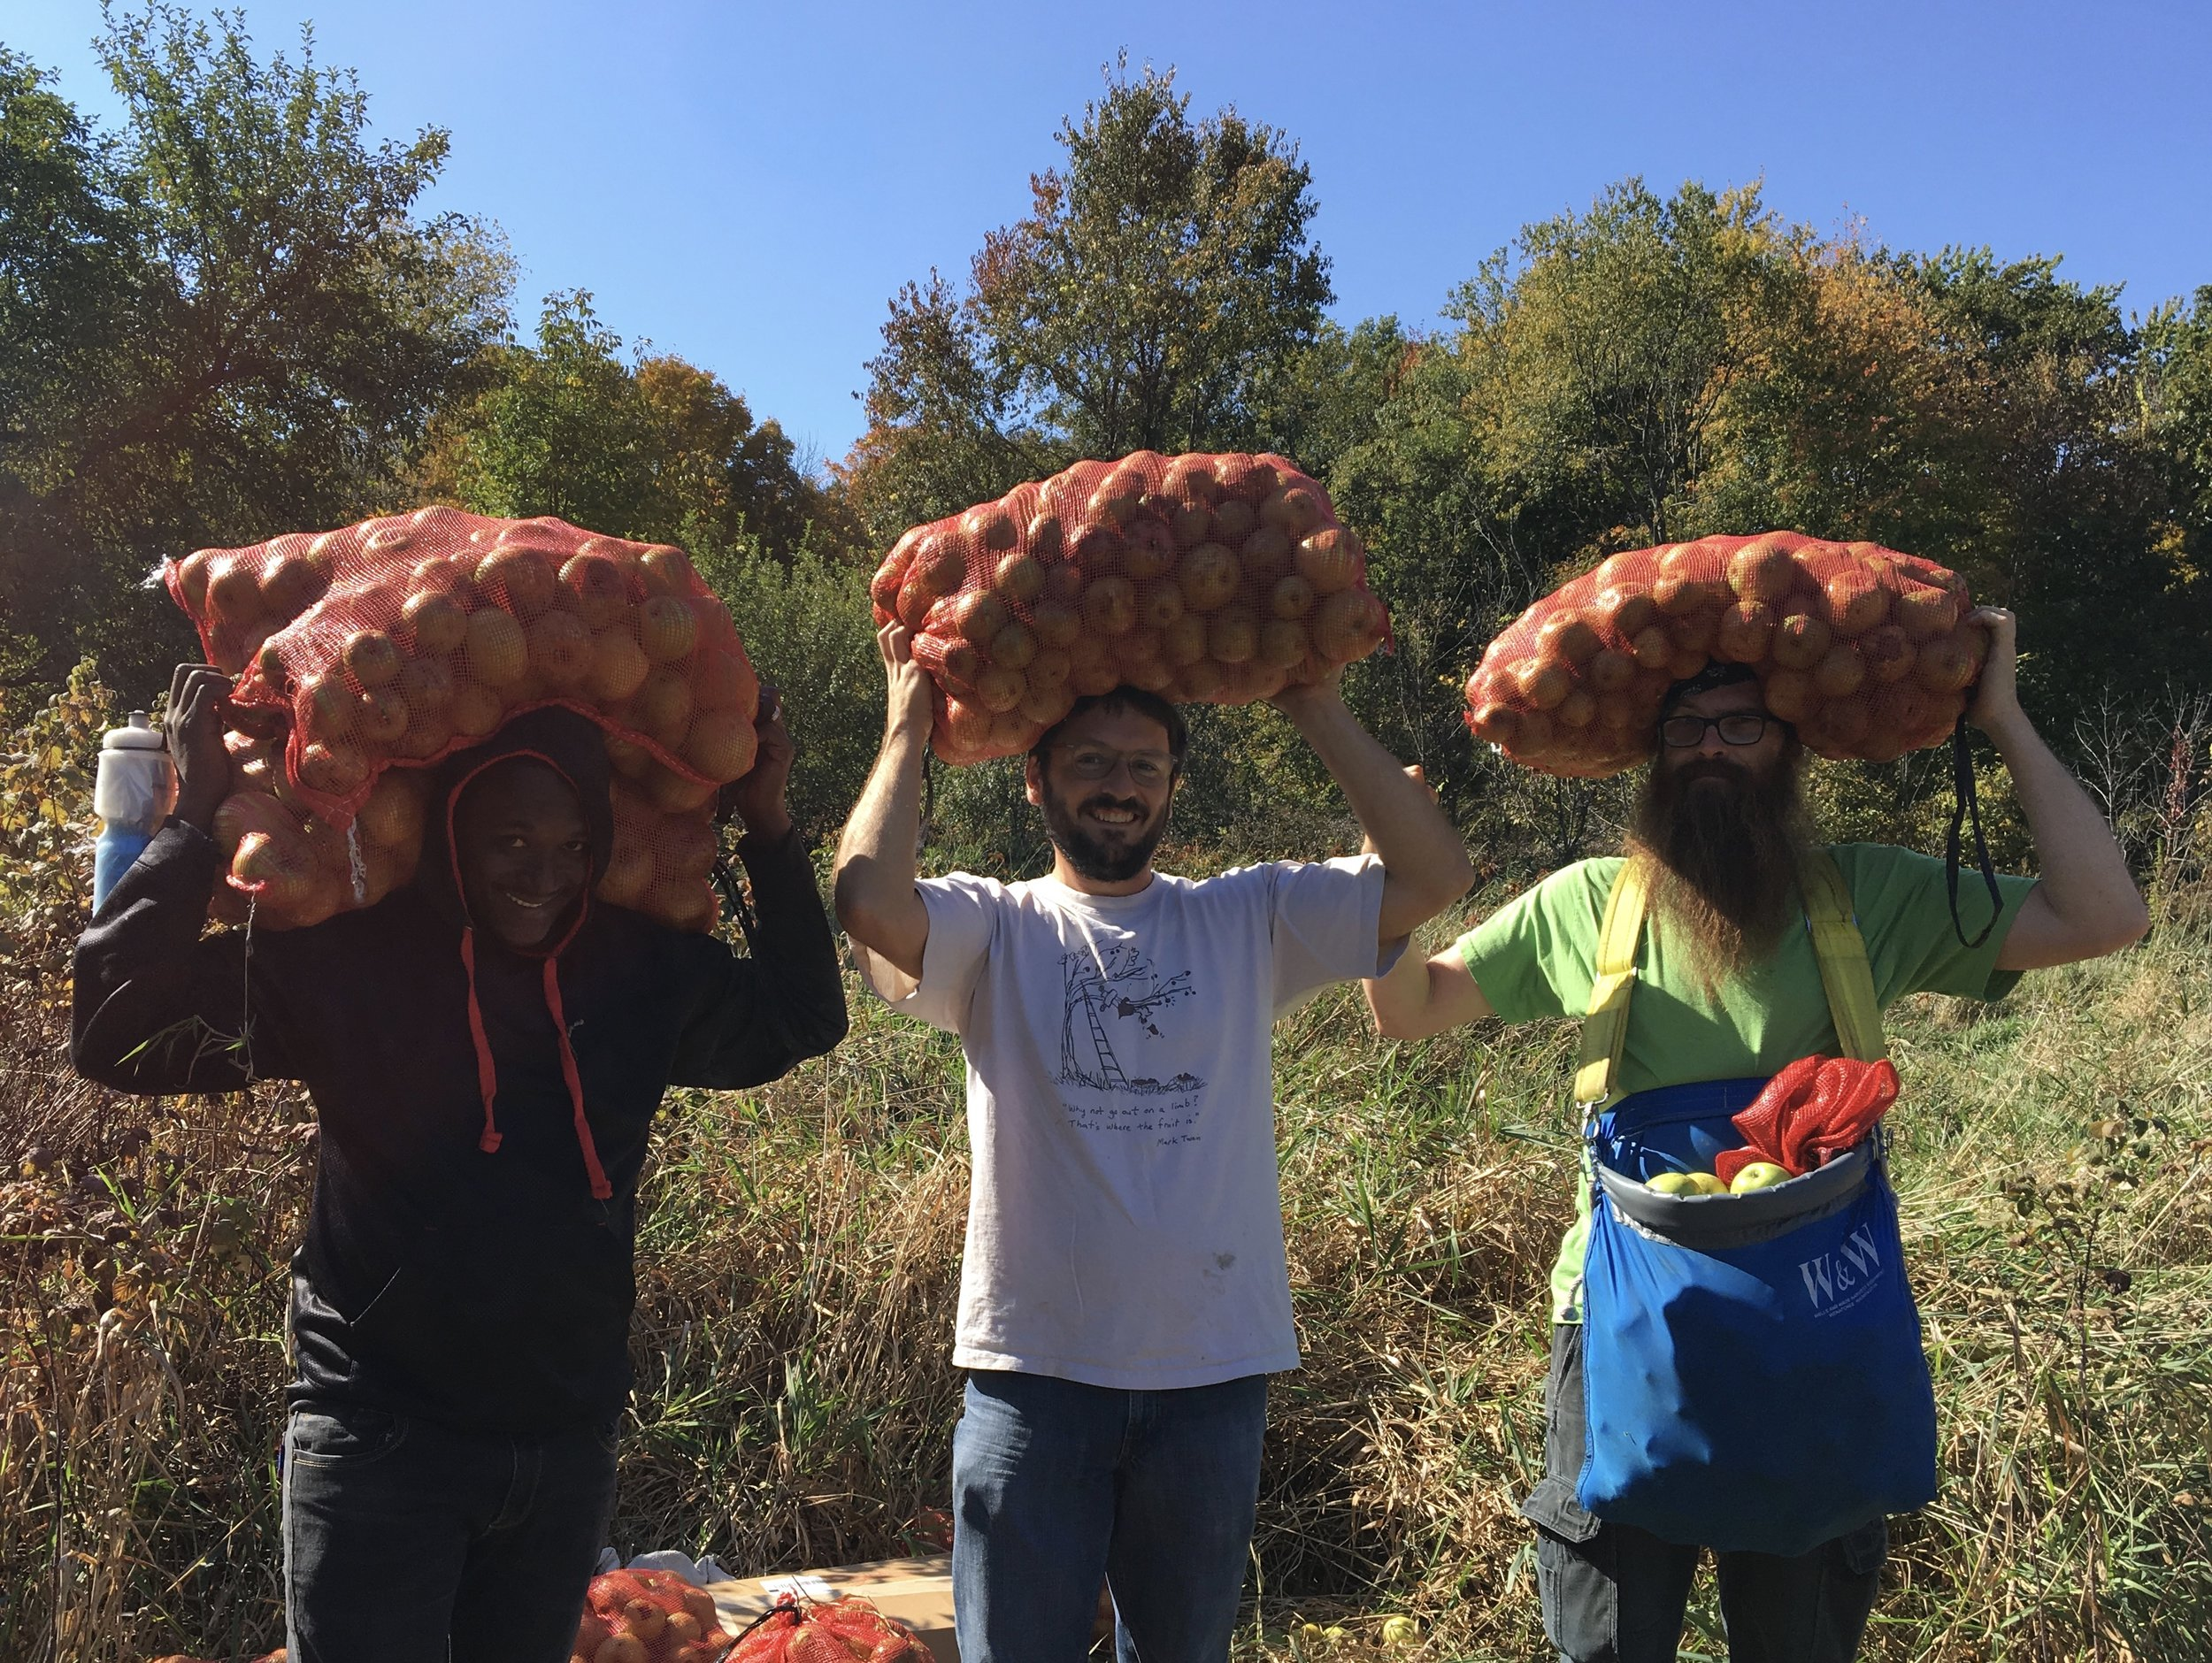 Above: Oseida, Matt, and Bergere - the day we hauled apples on our heads!